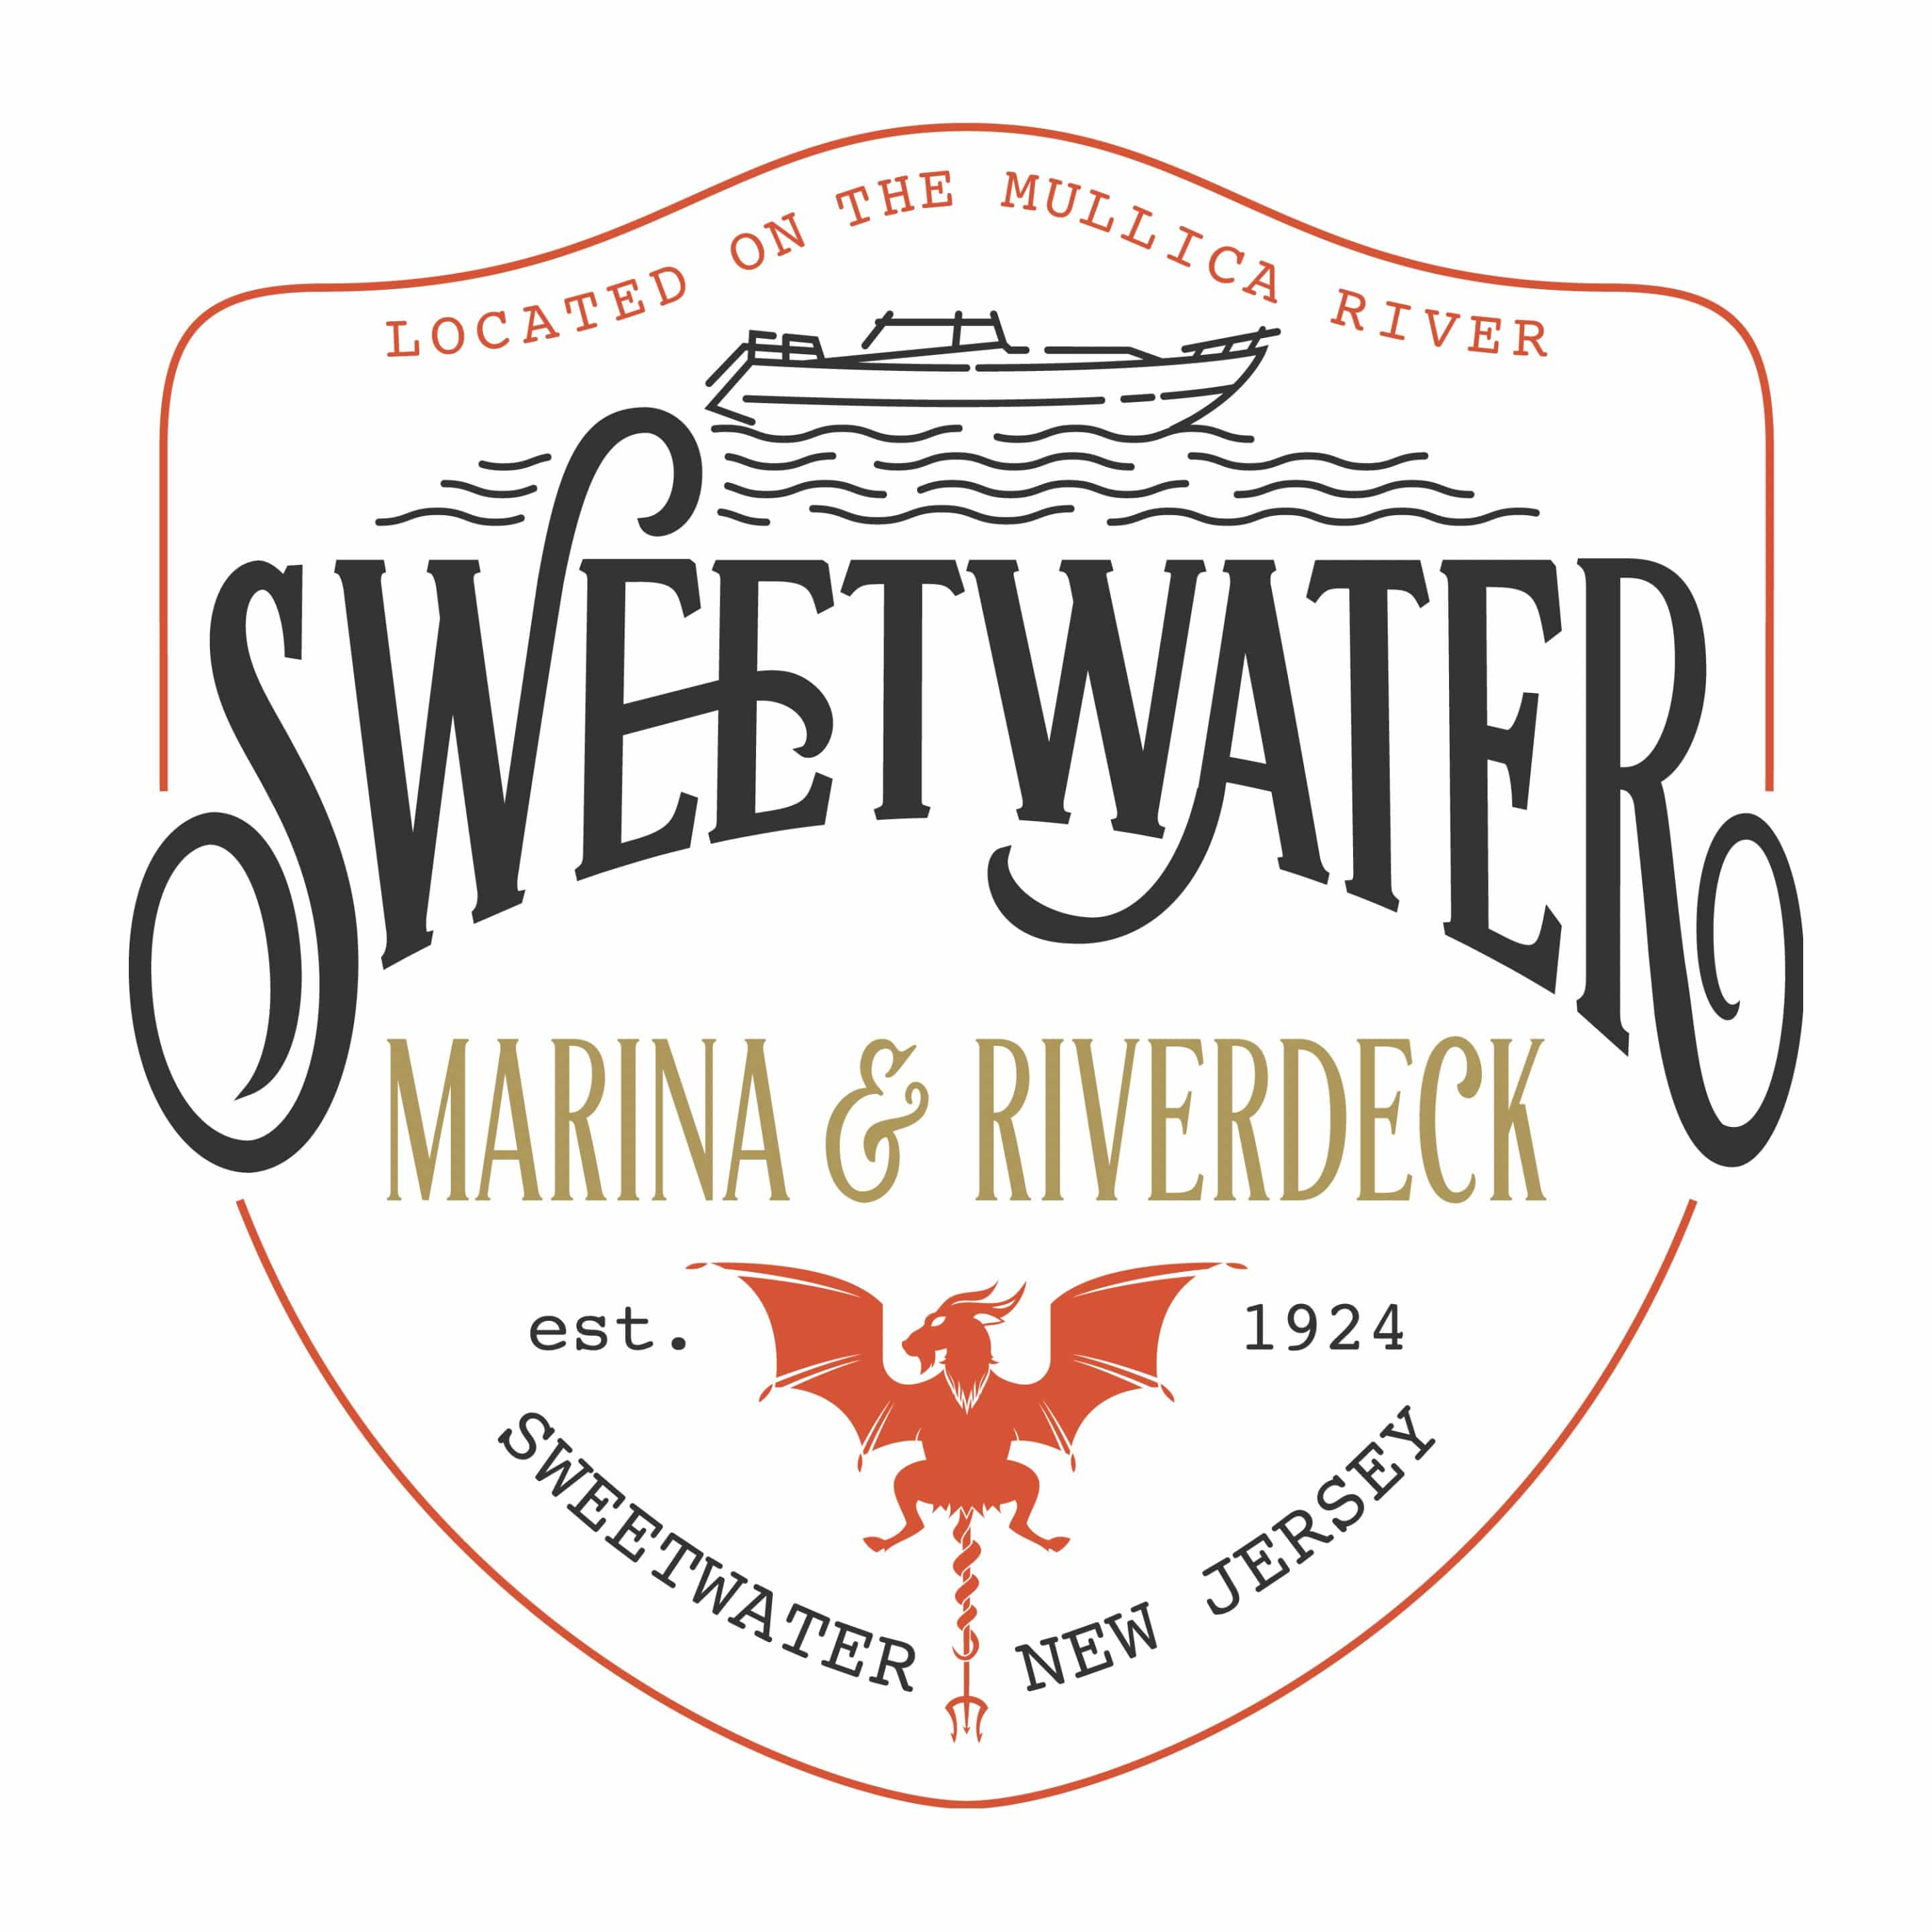 Sweetwater Riverdeck